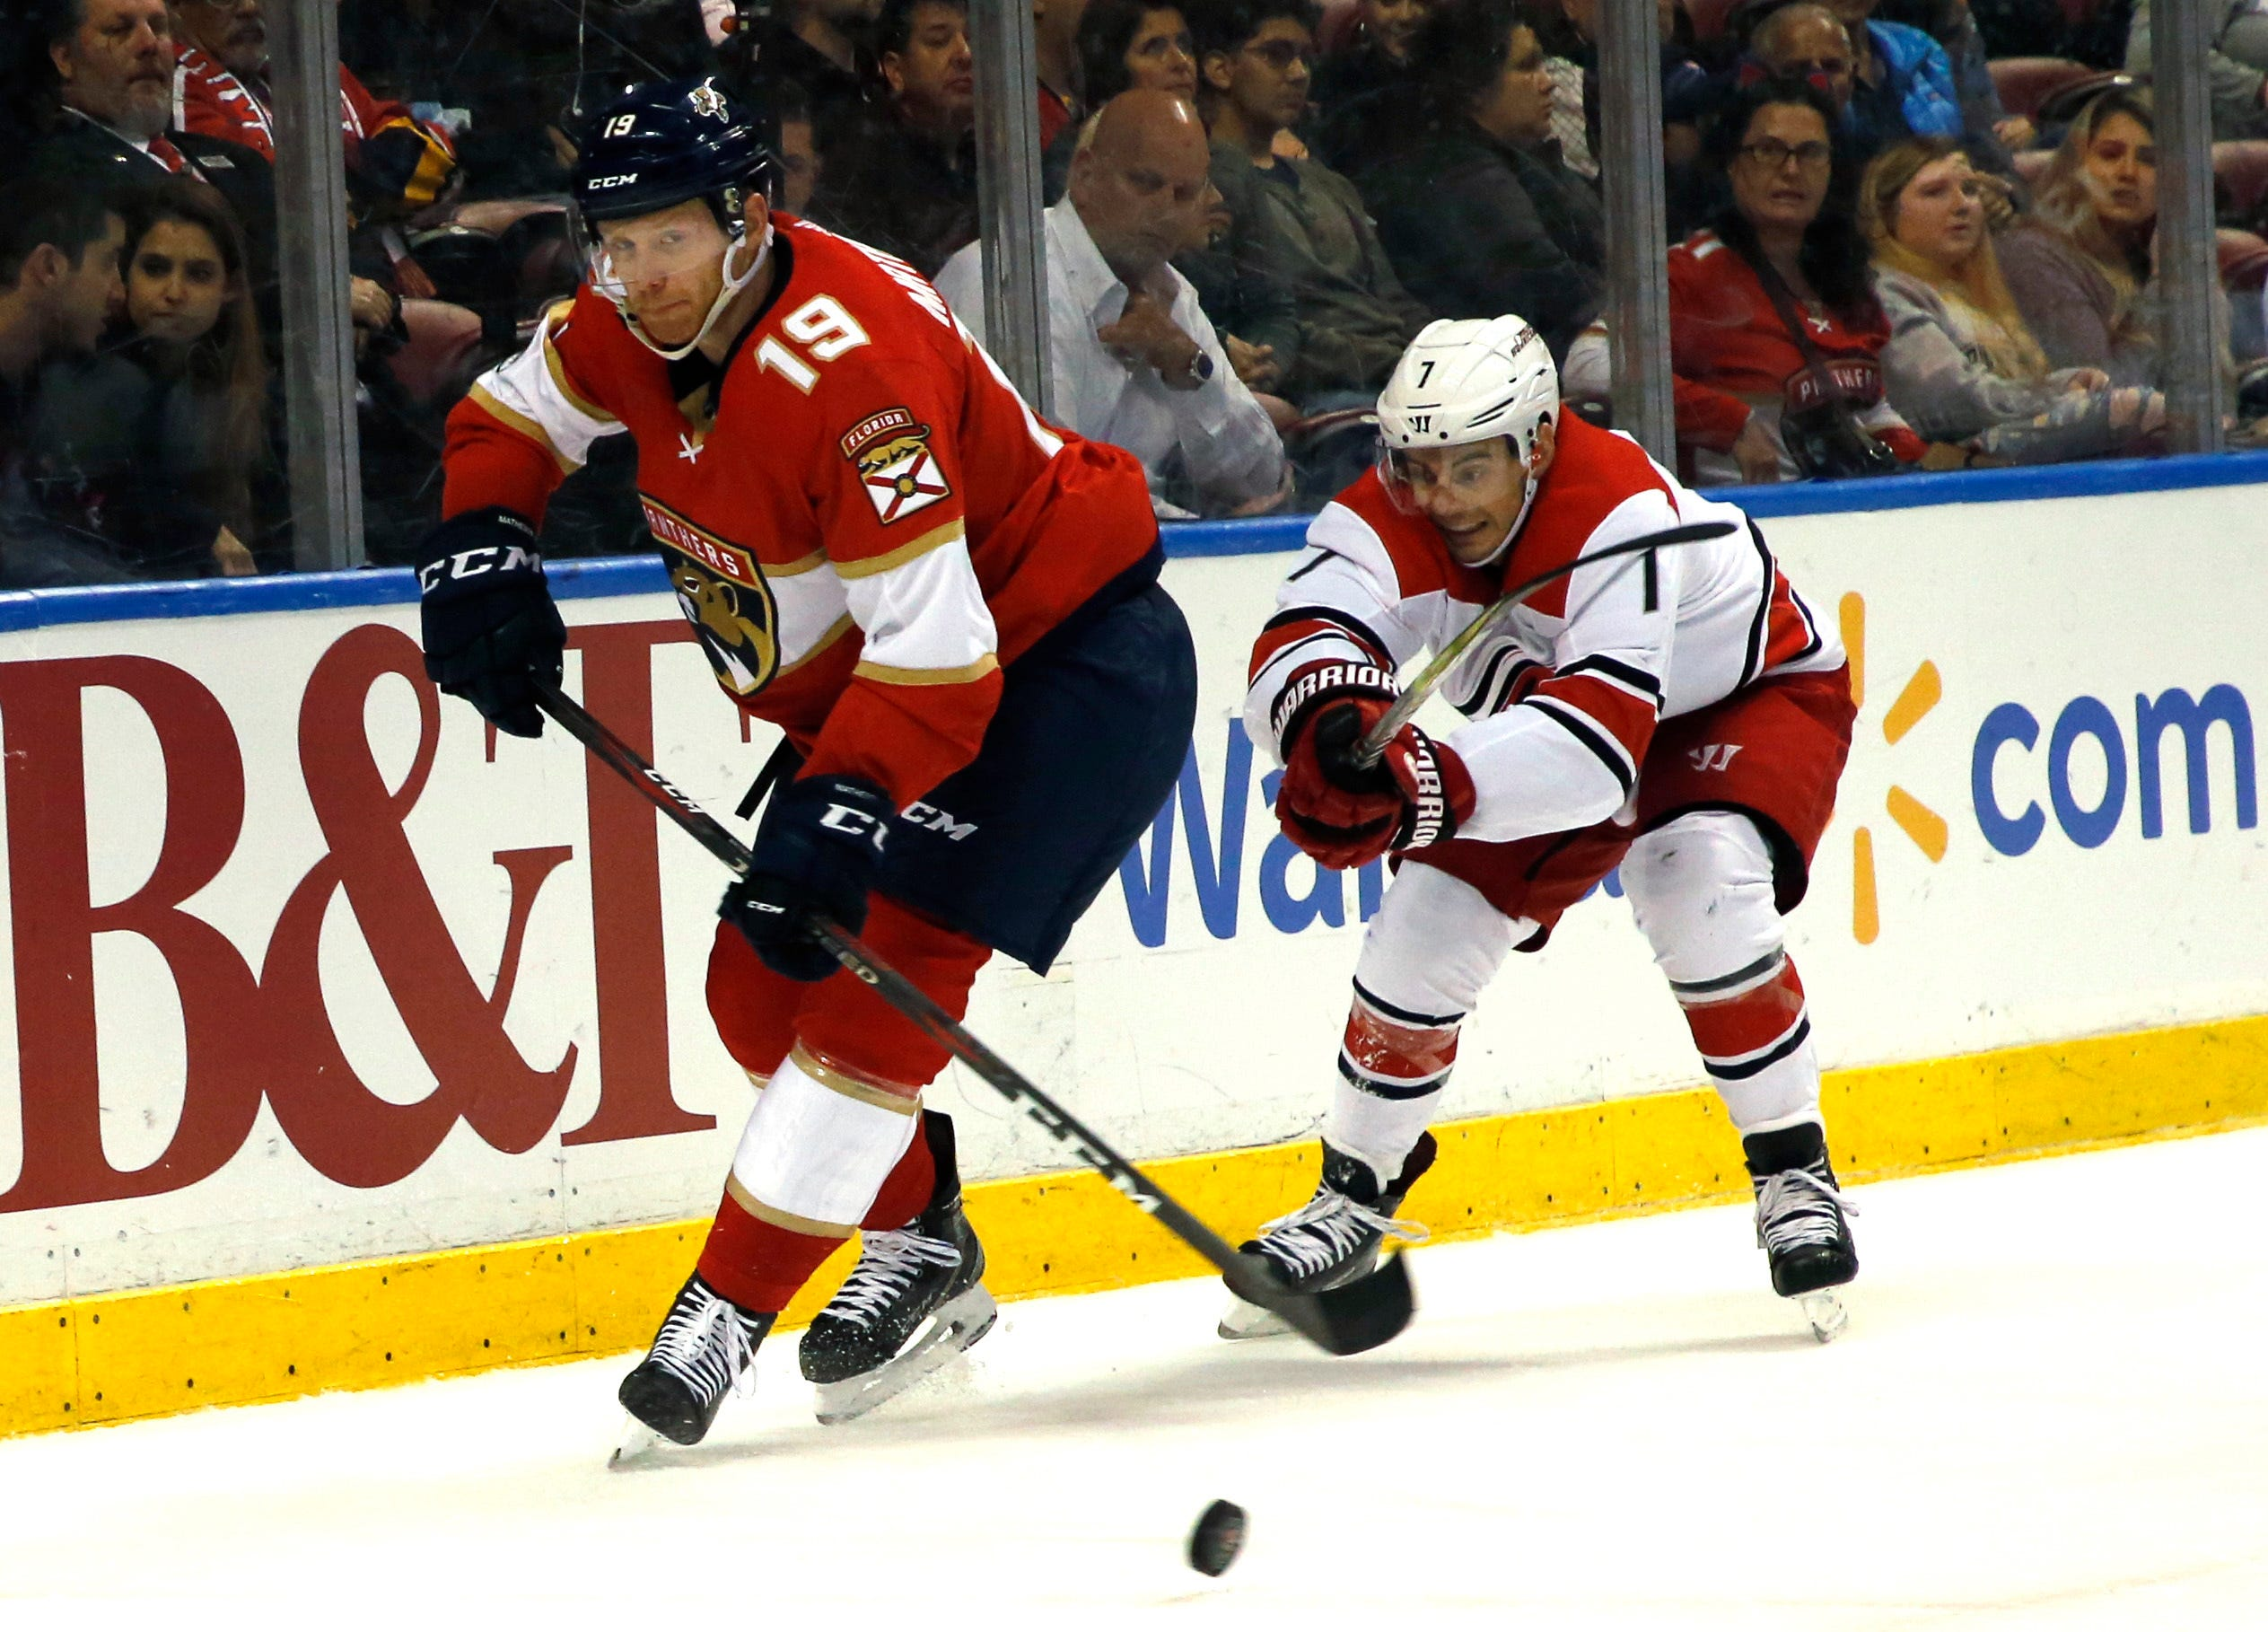 Petrovic scores in 3rd period, Panthers beat Hurricanes 3-2